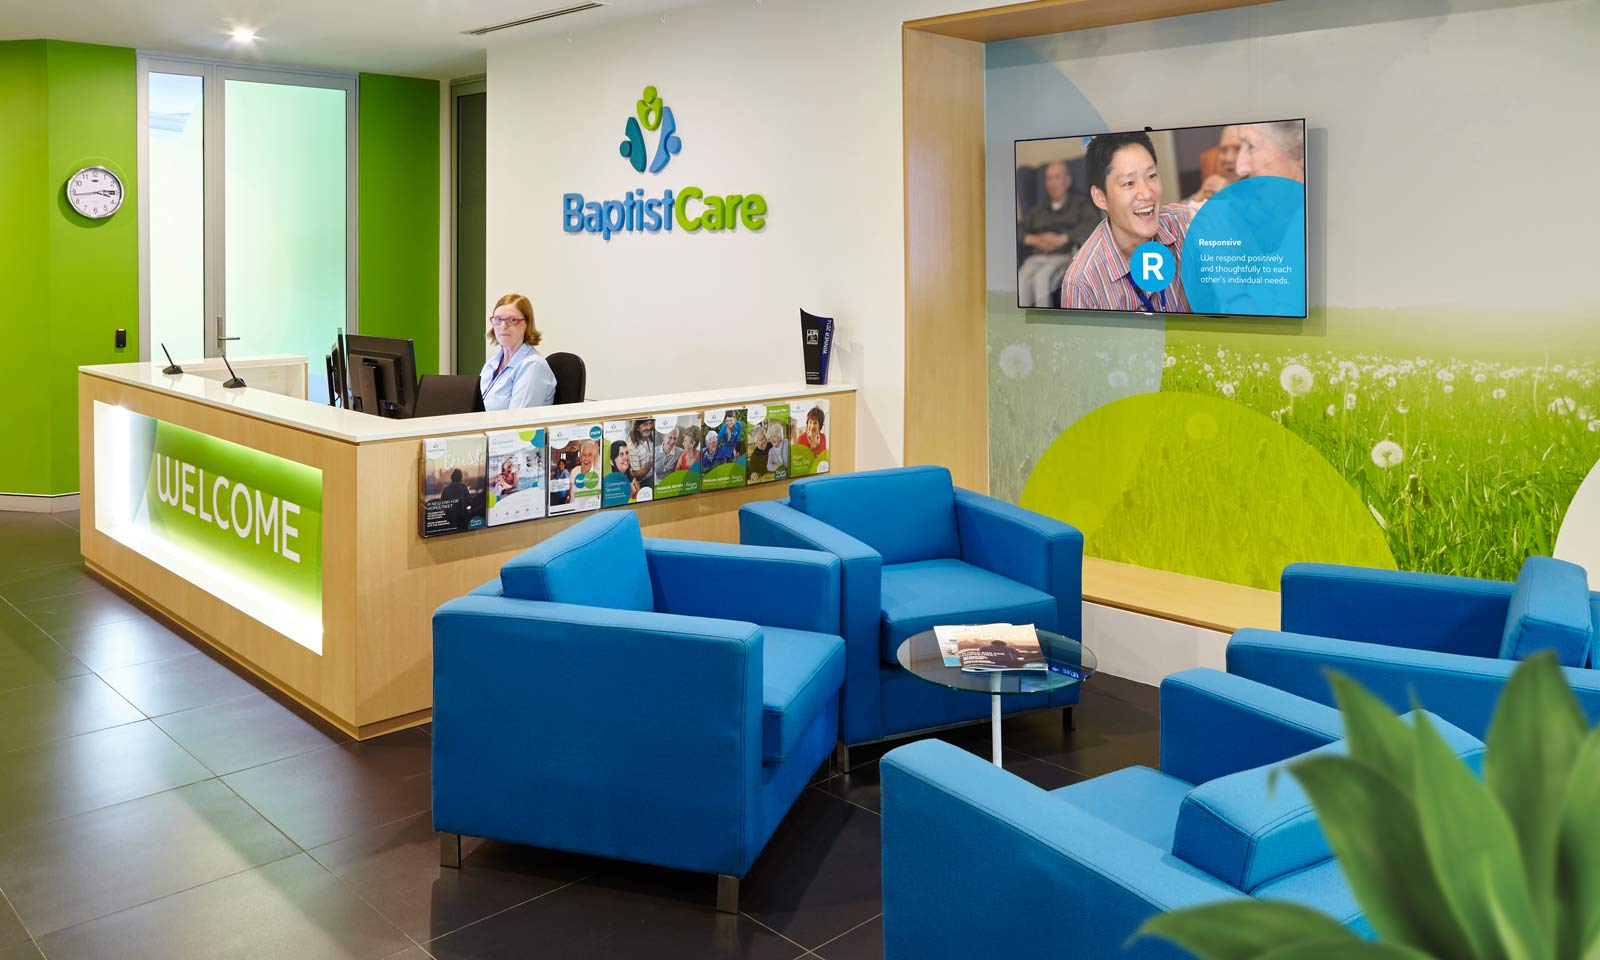 BaptistCare staff reception area.